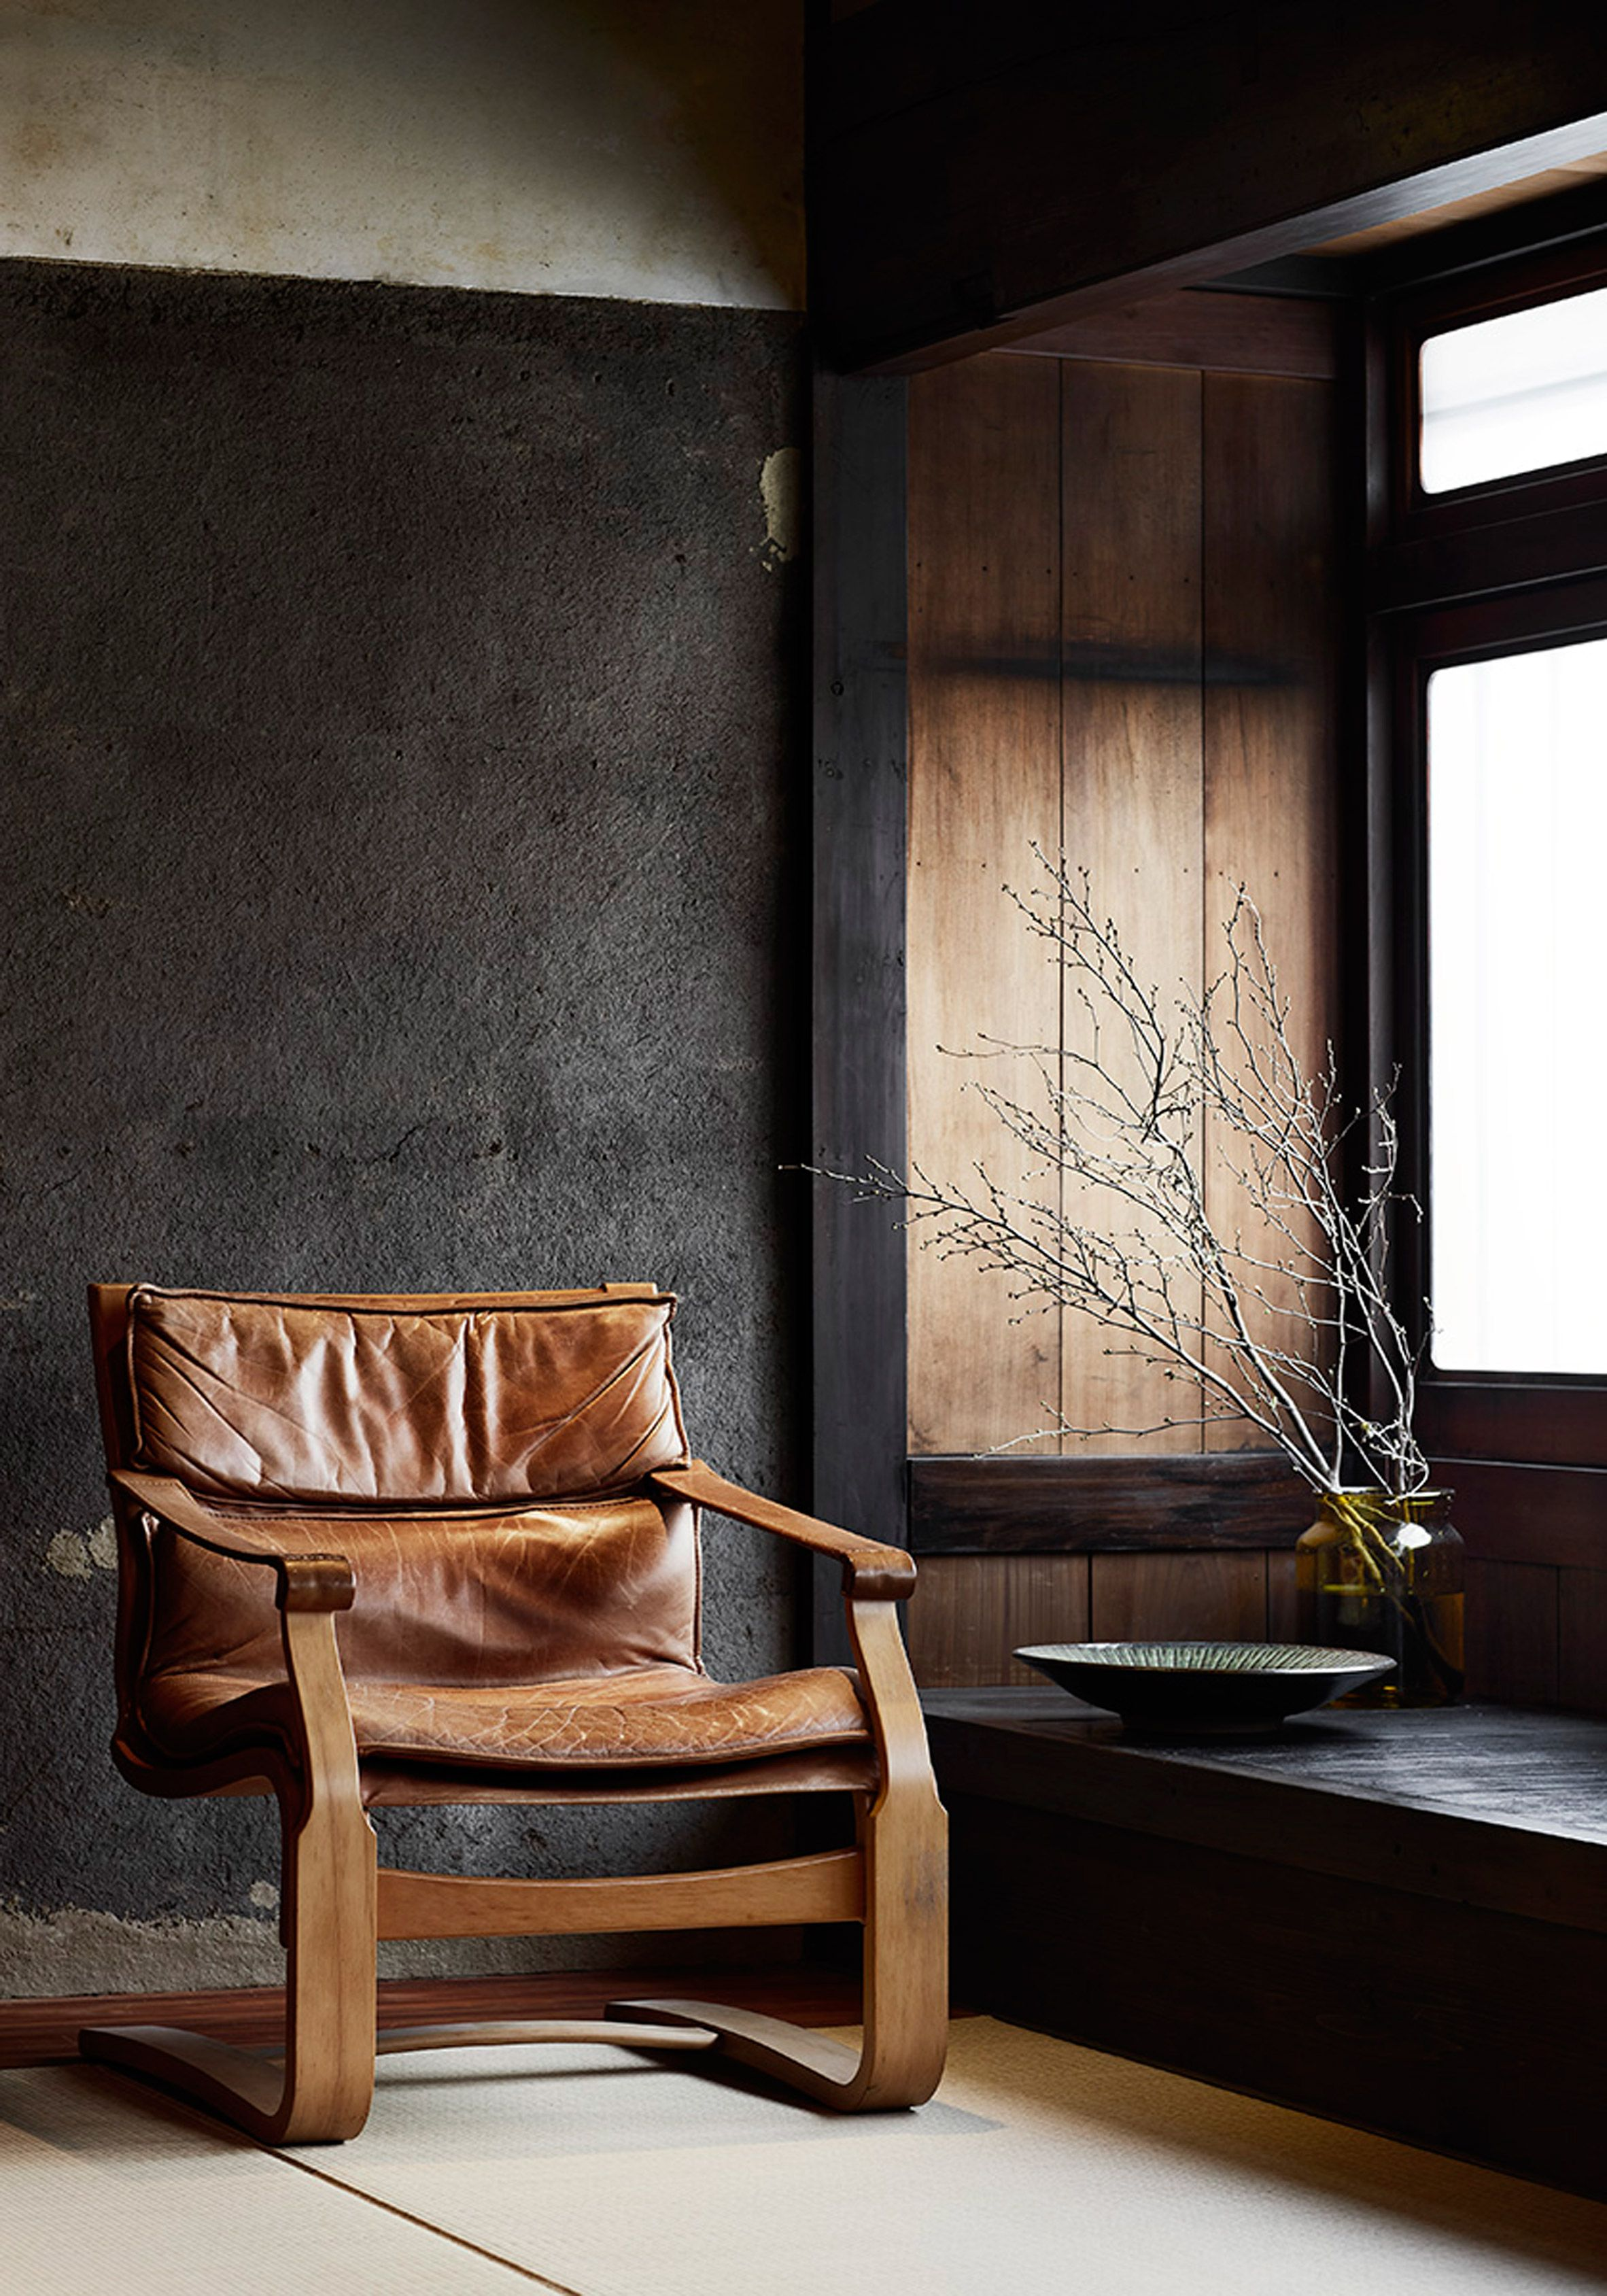 Japanese style office Workplace Design Bedroom Apartments Outdoor Style Restaurant Home Wood Slats Decor Small Spaces Living Room Hotel Kengo Kuma Office Kitchen Wabi Sabi Colour Window Flickr 10 Concepts To Know Before Remodeling Your Interior Into Japanese